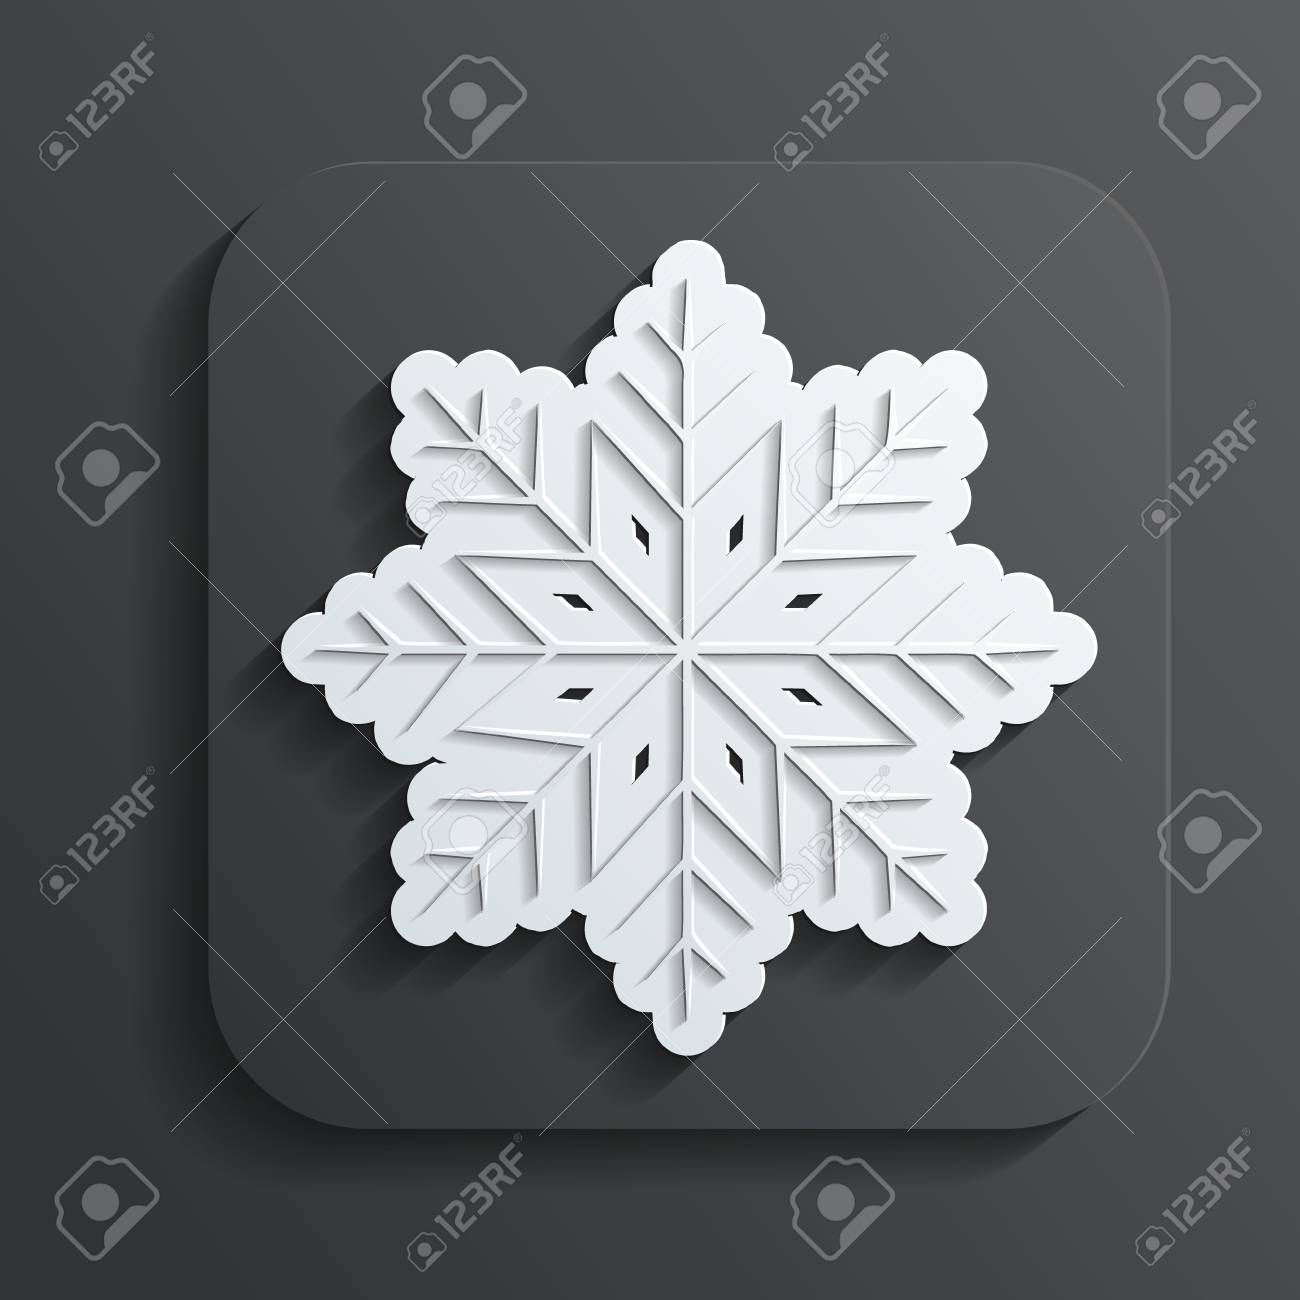 icon snowflake vector Stock Vector - 22526836